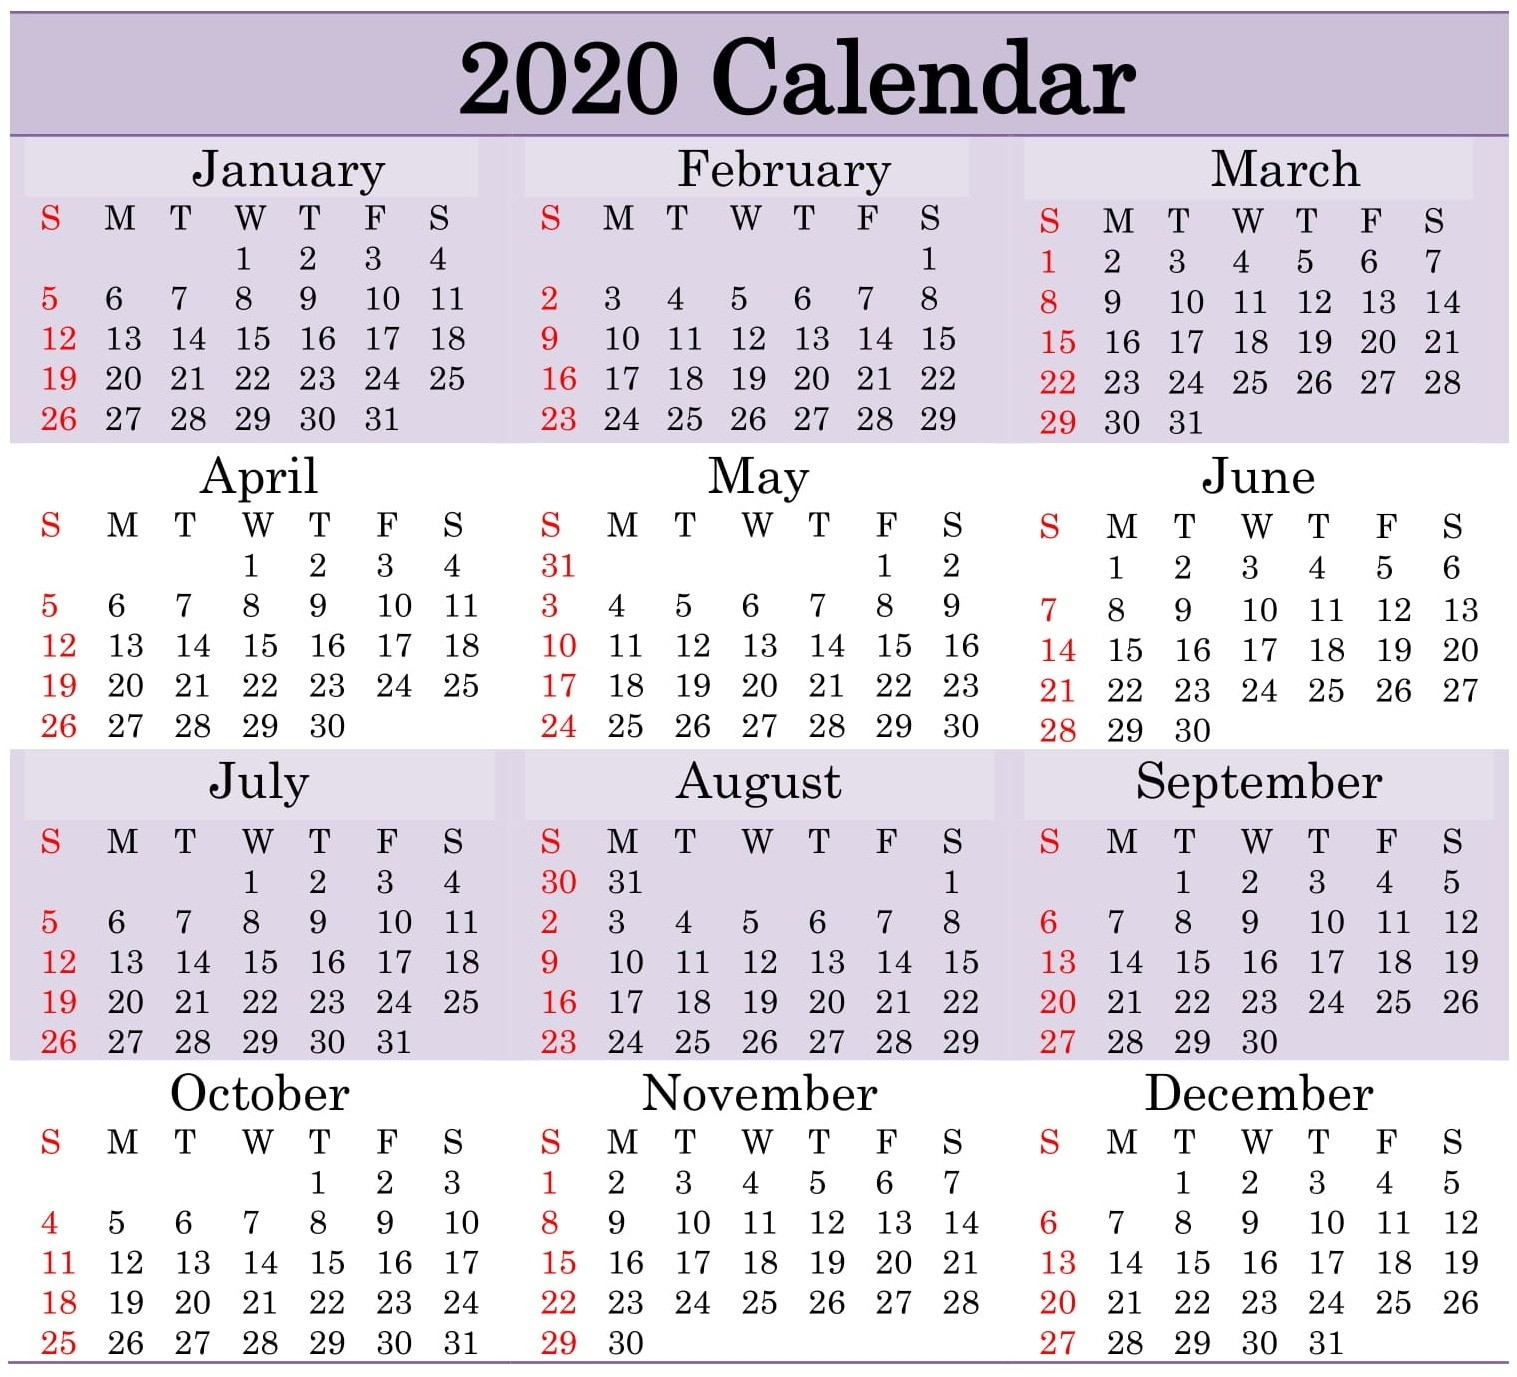 Printable 2020 Calendar Word Document - Latest Printable  Julian Calendar 2020